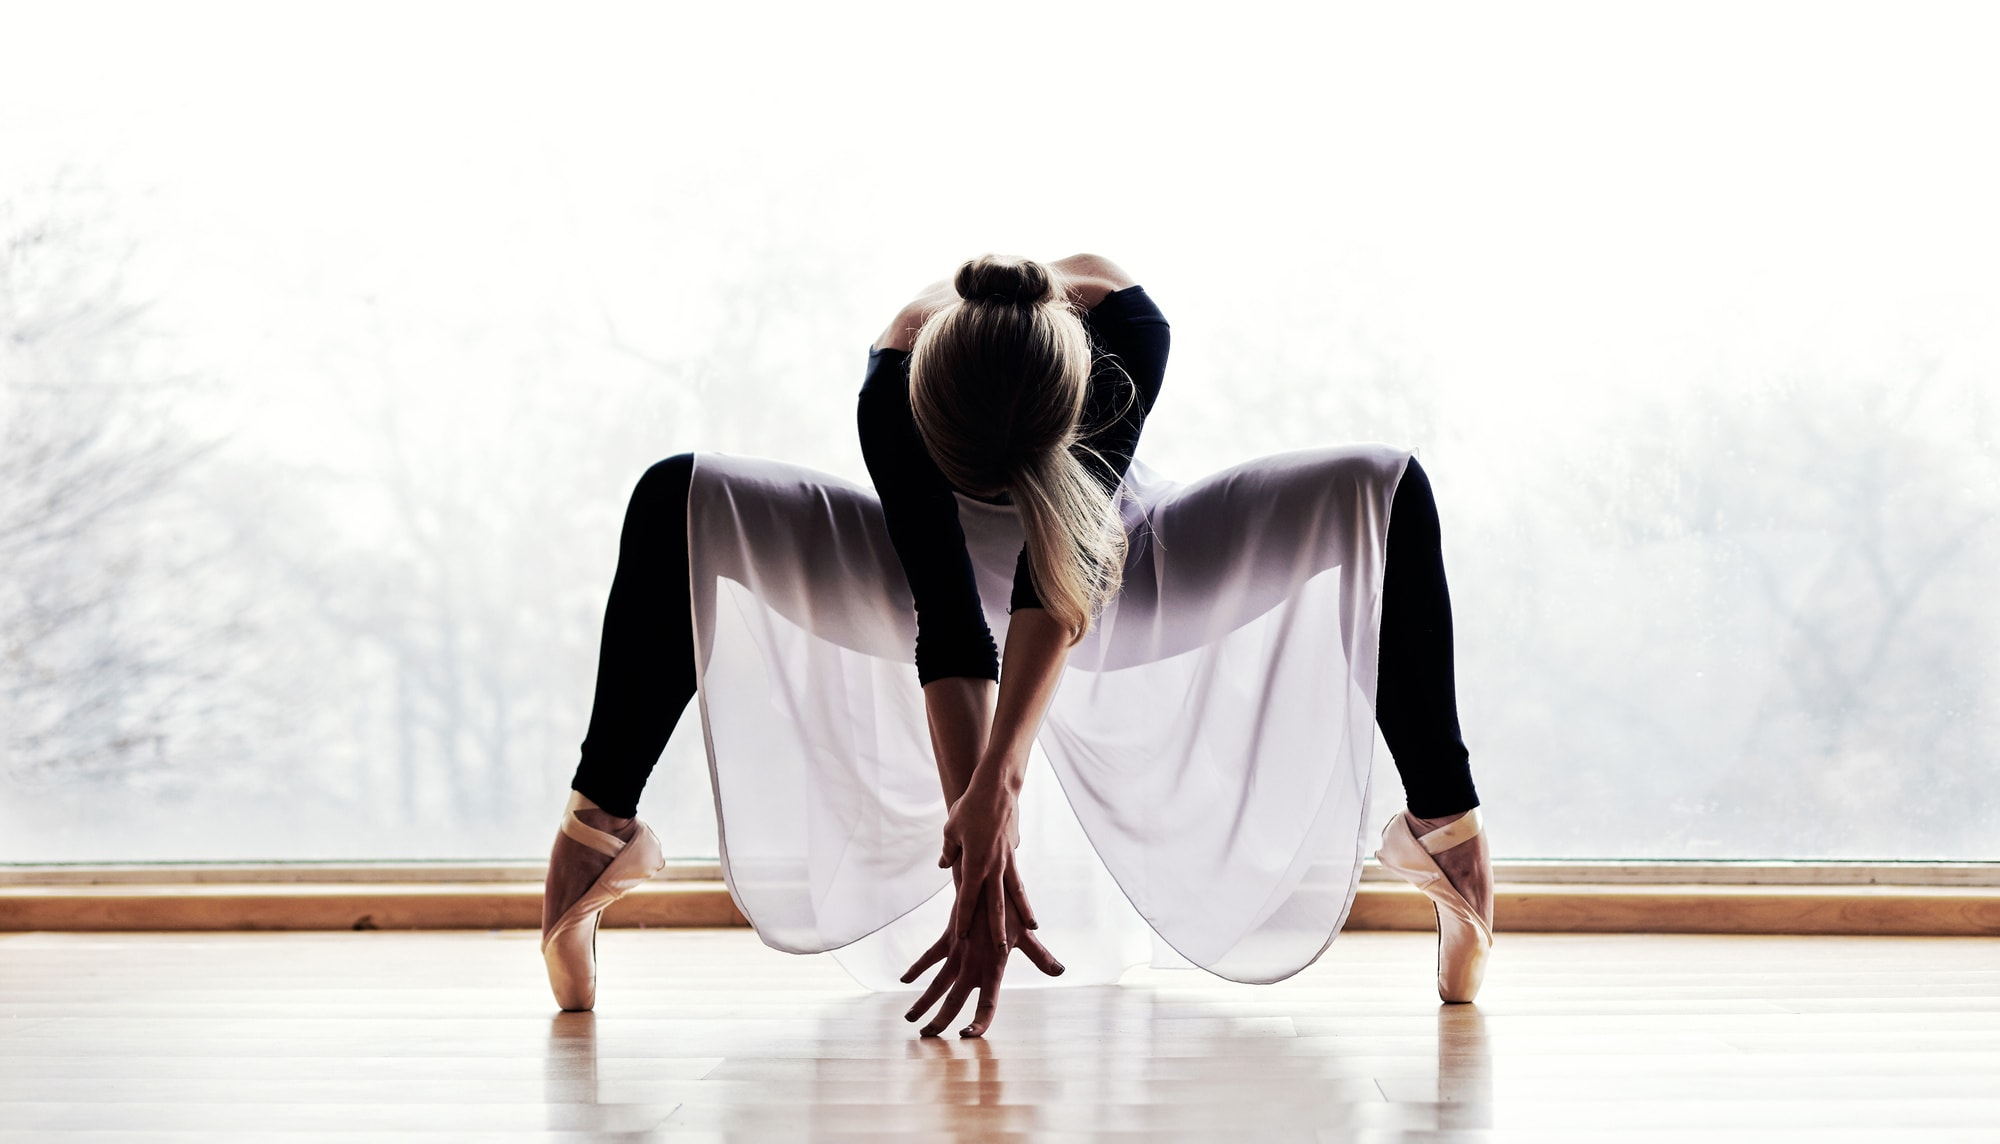 A ballerina crouching low on pointe.